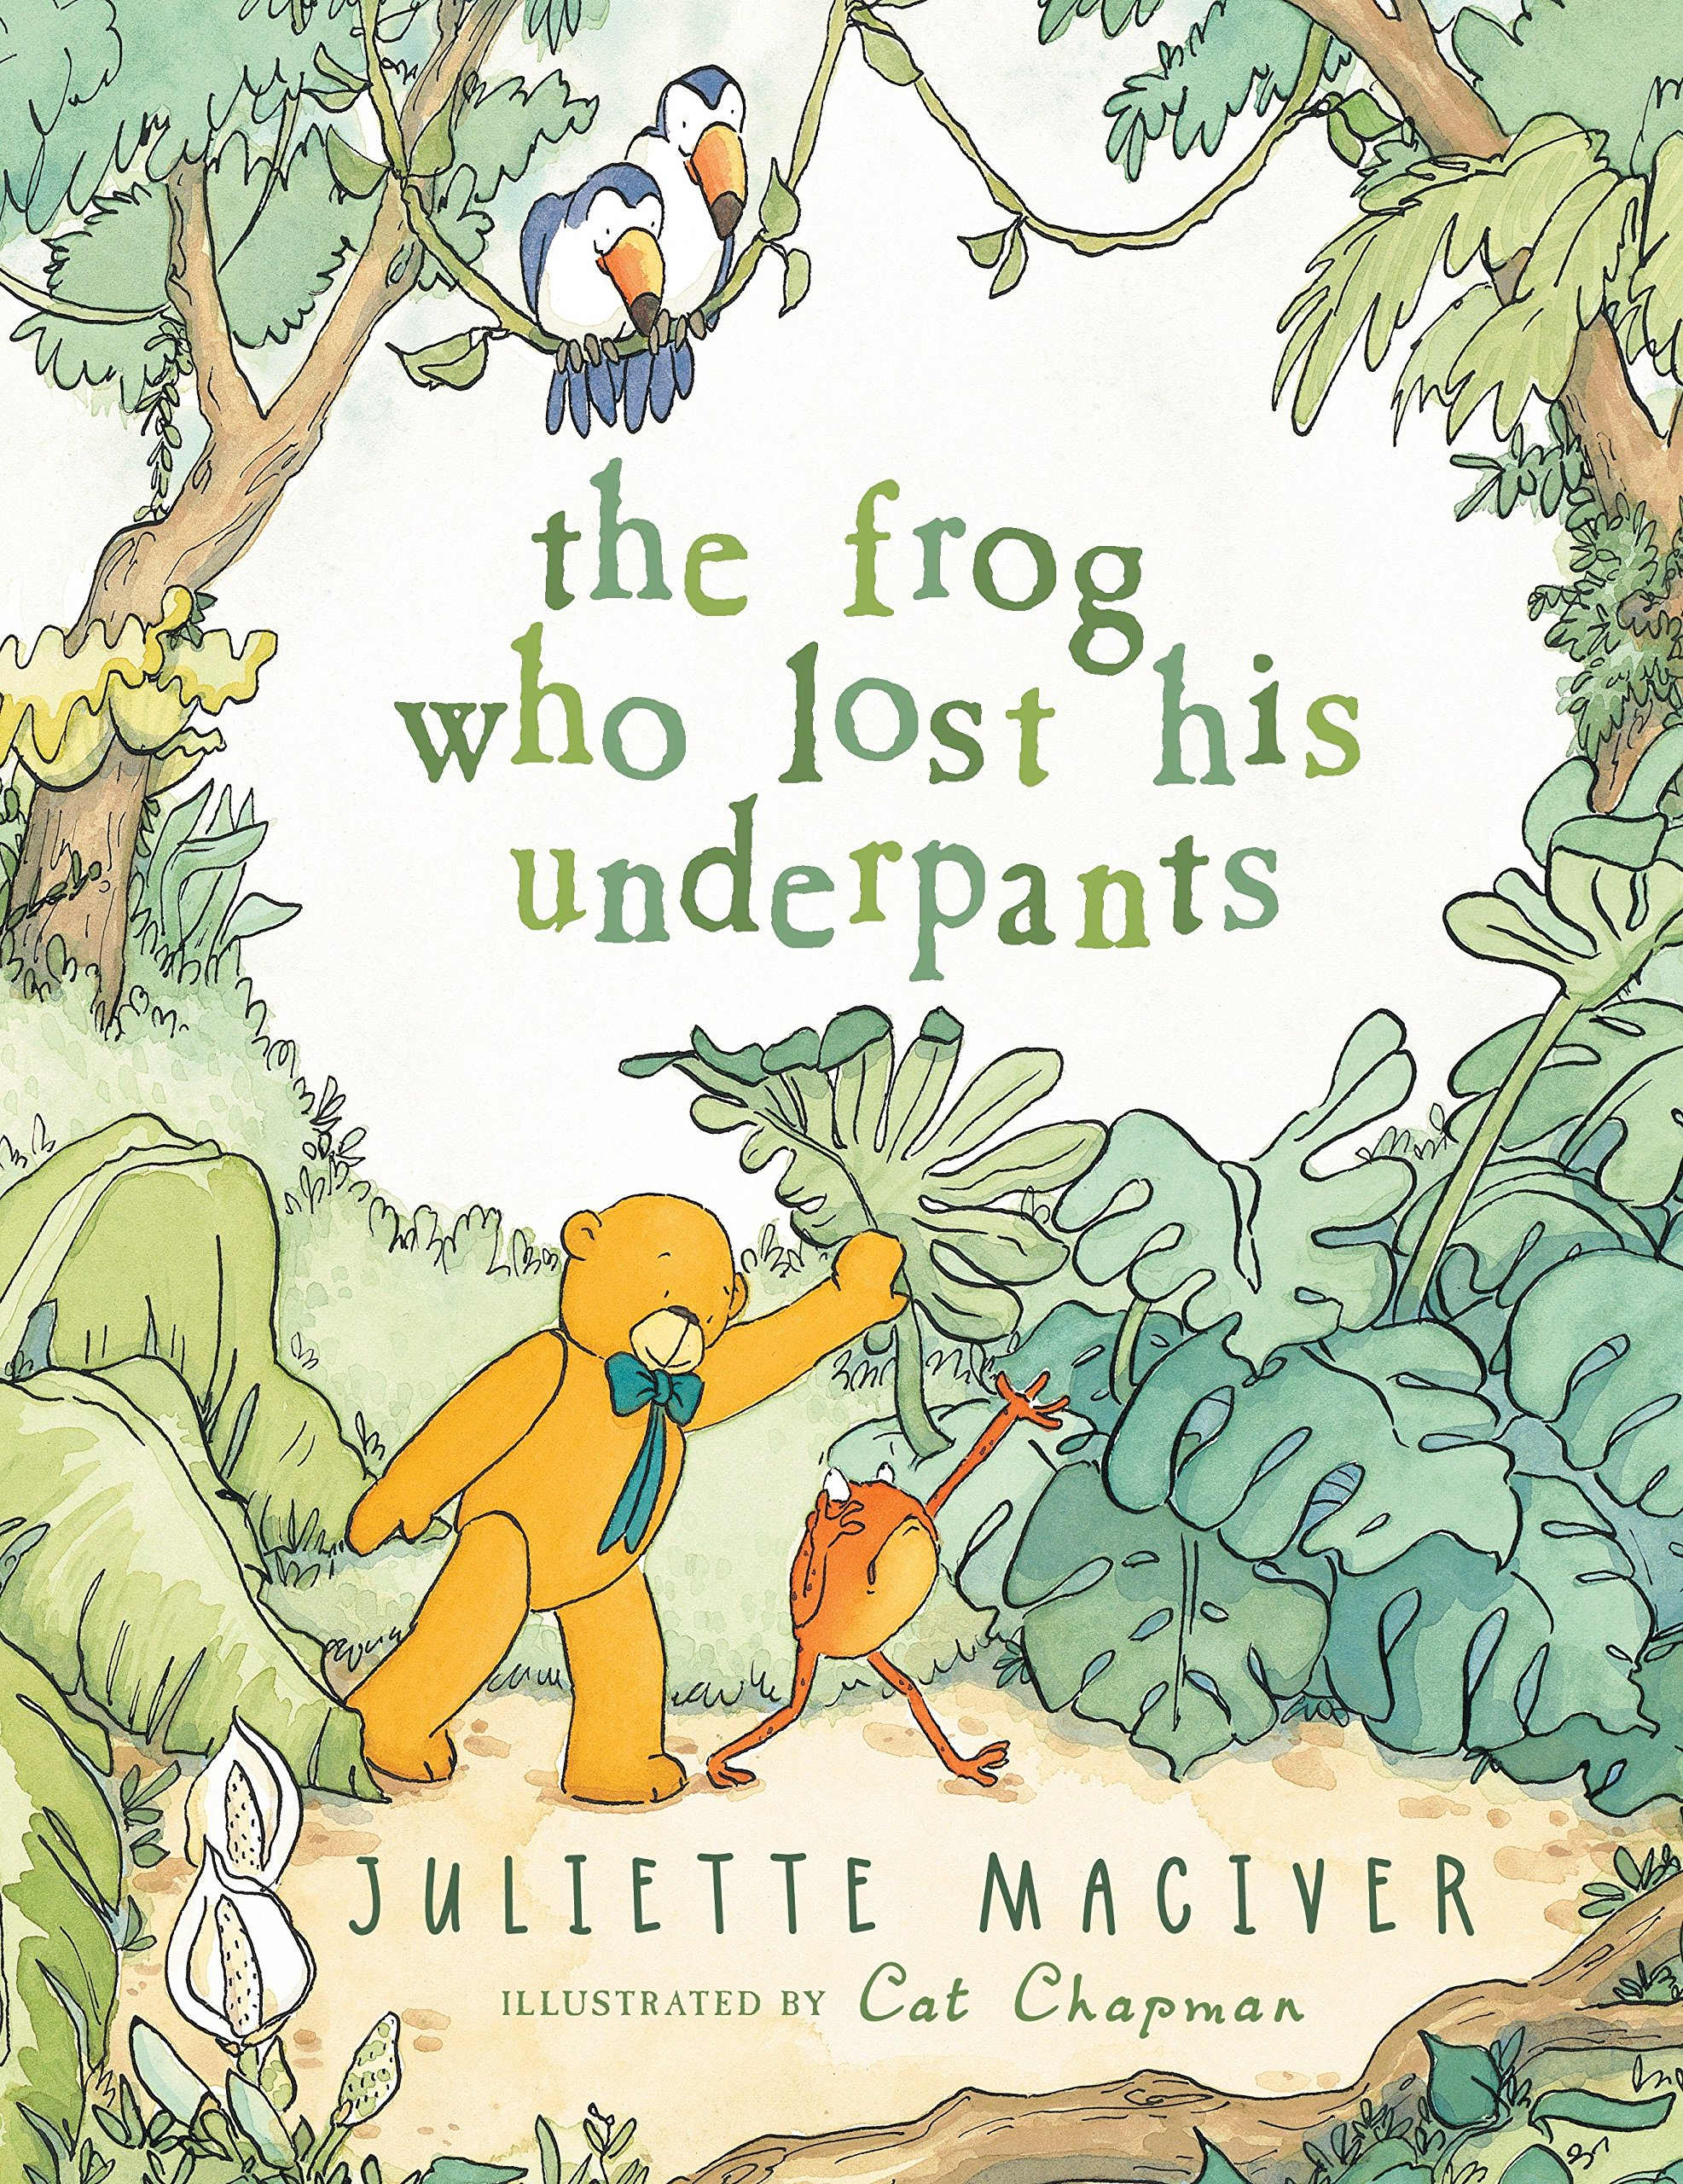 Amazon.com: The Frog Who Lost His Underpants (9780763667825 ...